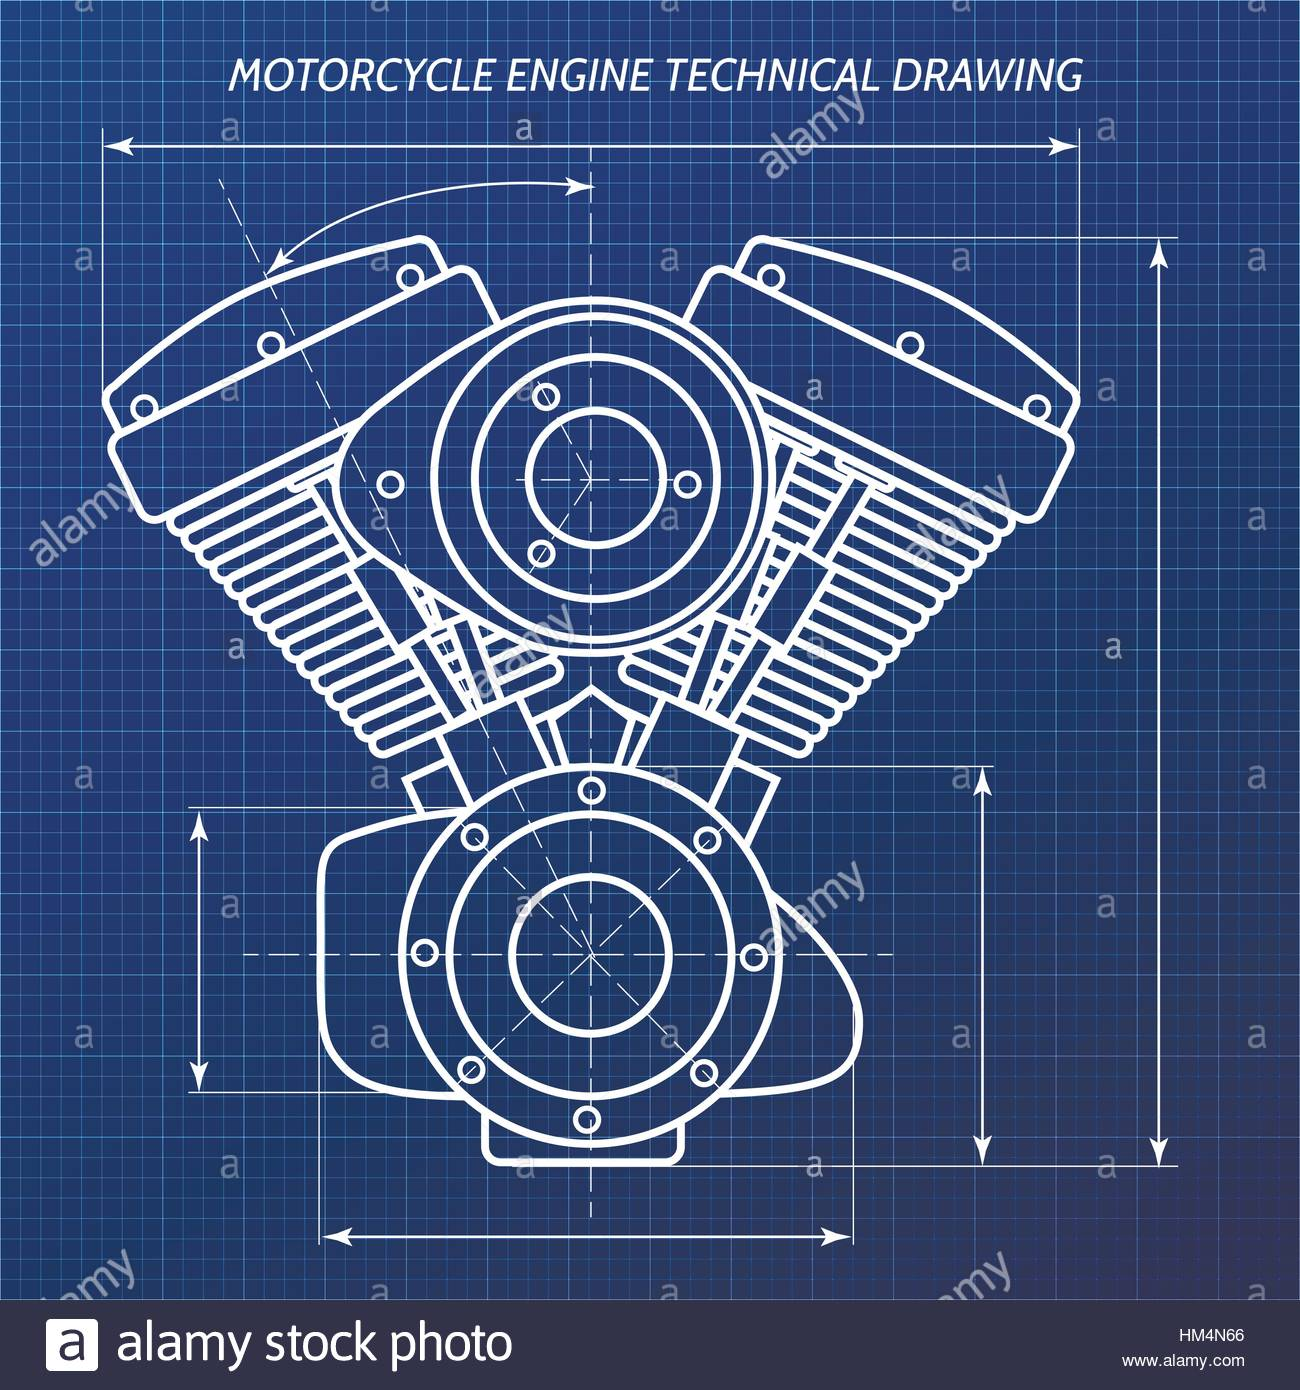 1300x1390 Technical Drawings Of Motorcycle Engine. Motor Engineering Concept